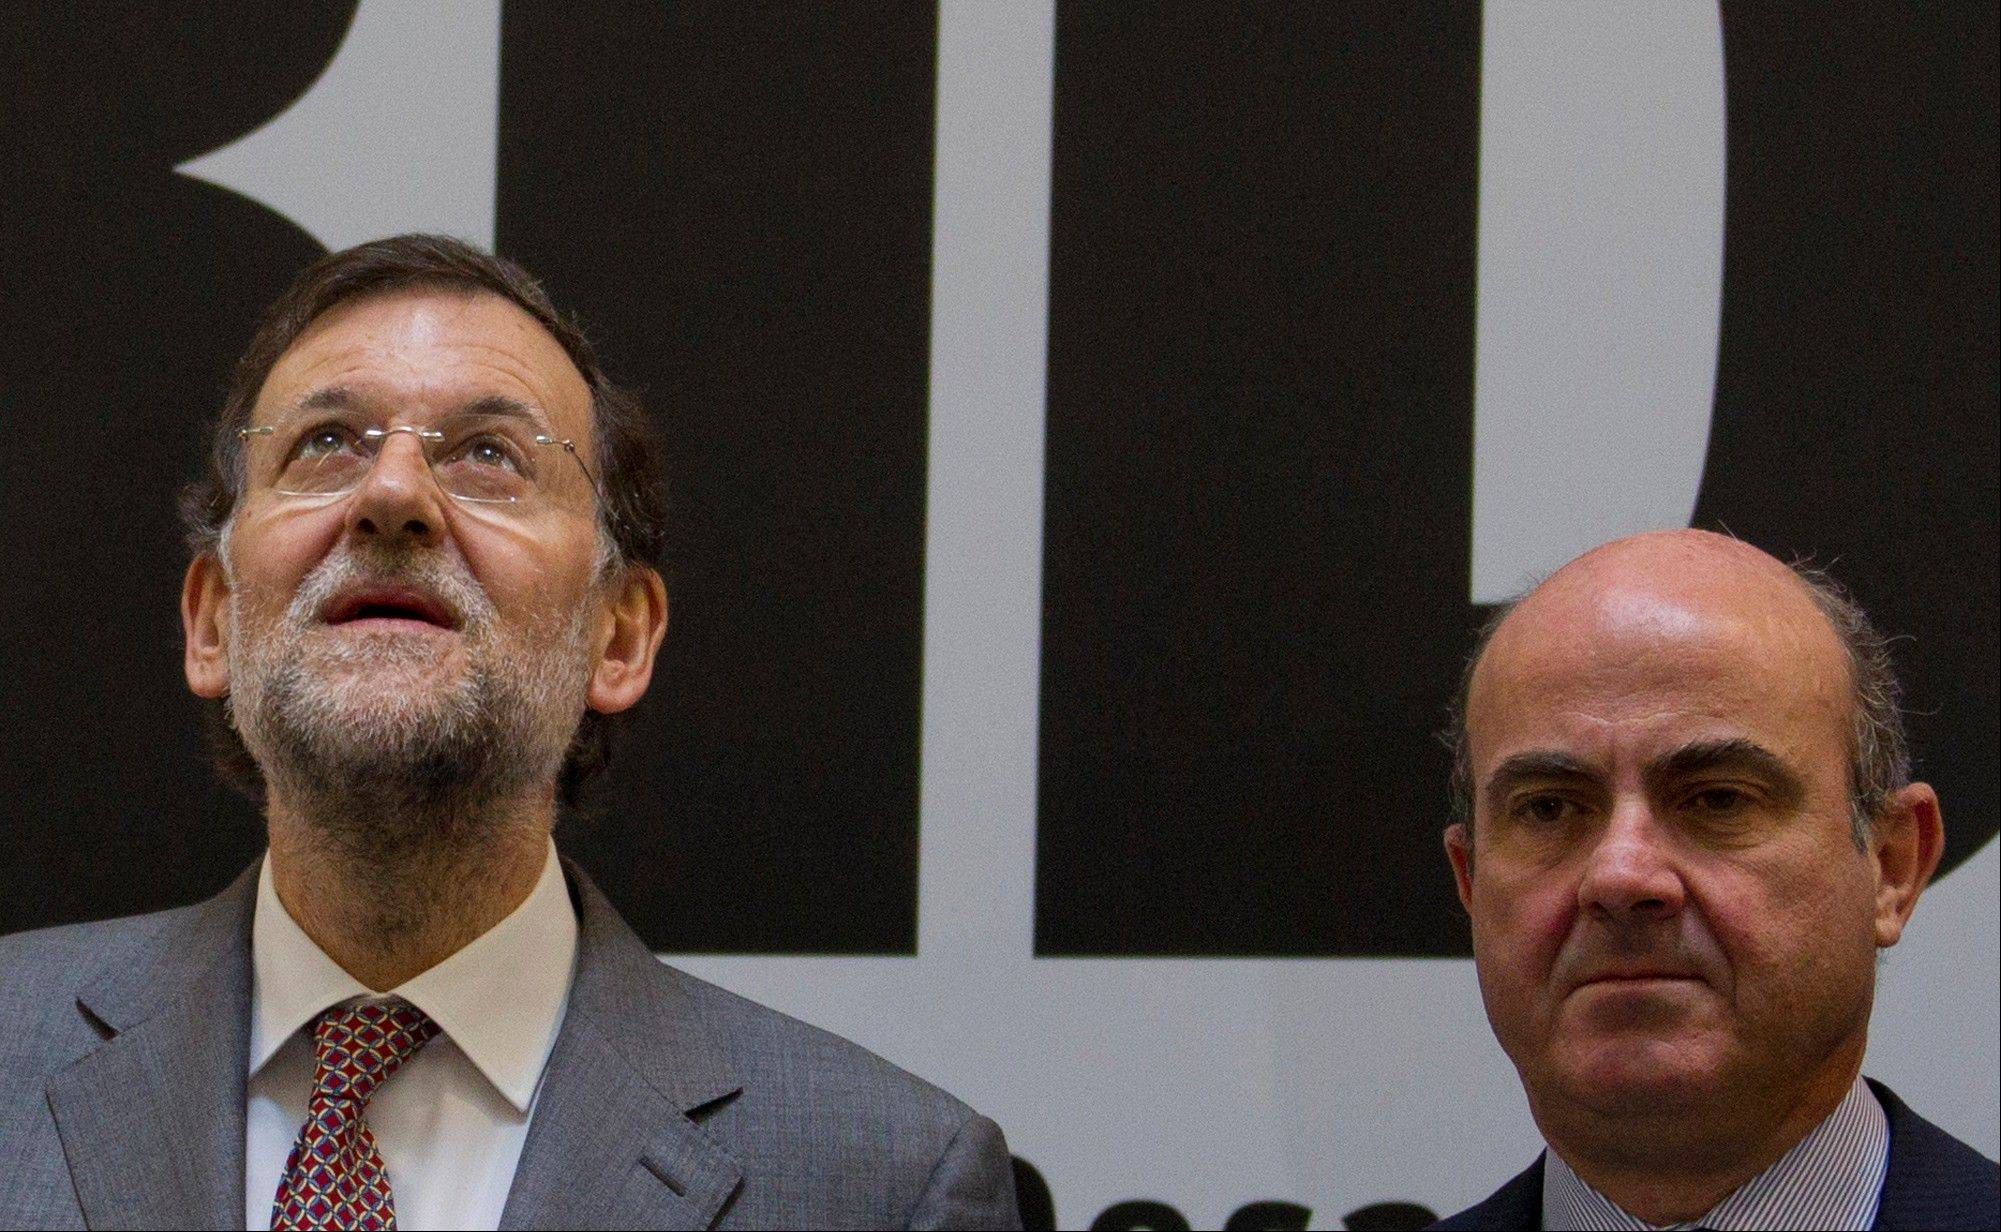 Spain's Prime Minister Mariano Rajoy, left, and Economy Minister Luis de Guindos pose during the official opening of the new headquarters of the Inter-American Development Bank in Madrid.